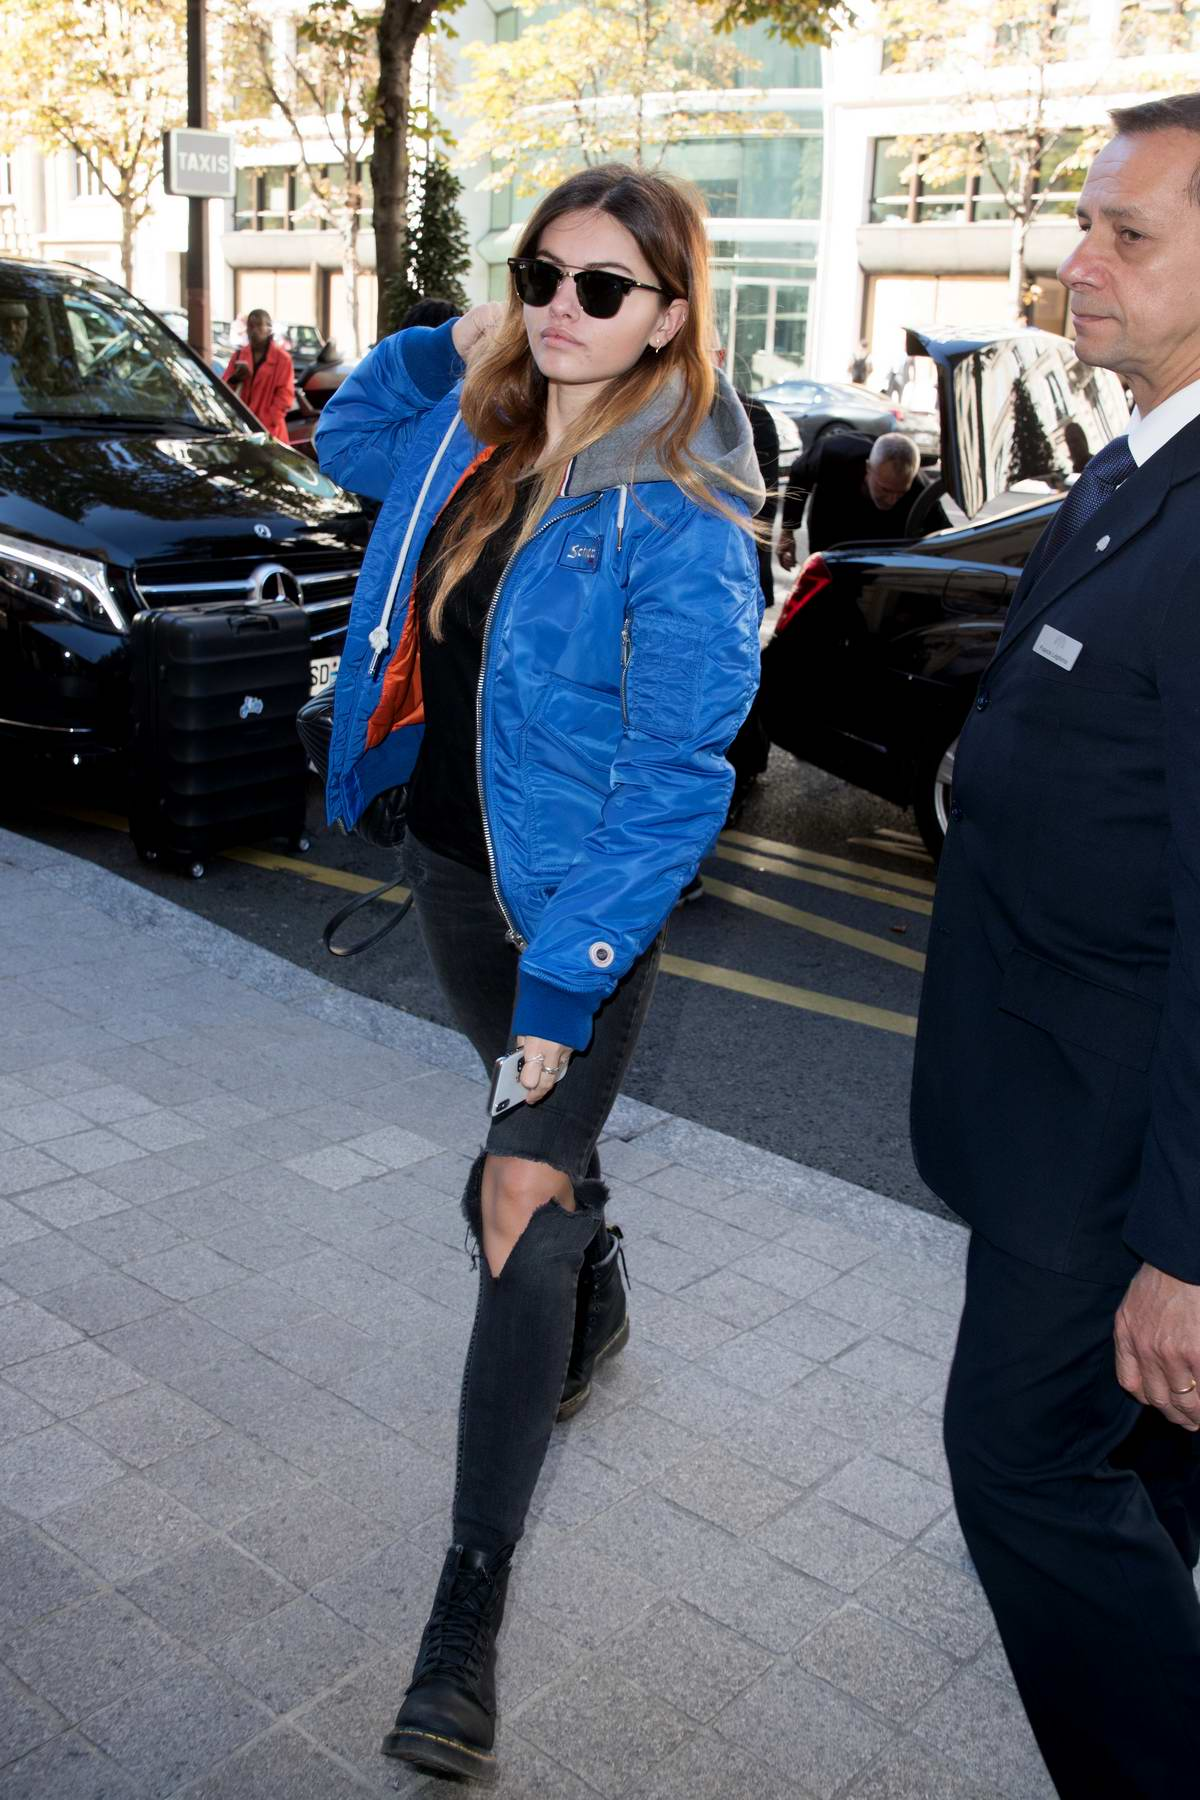 Thylane Blondeau spotted in a blue jacket and ripped jeans as she arrives at the Royal Monceau Hotel in Paris, France